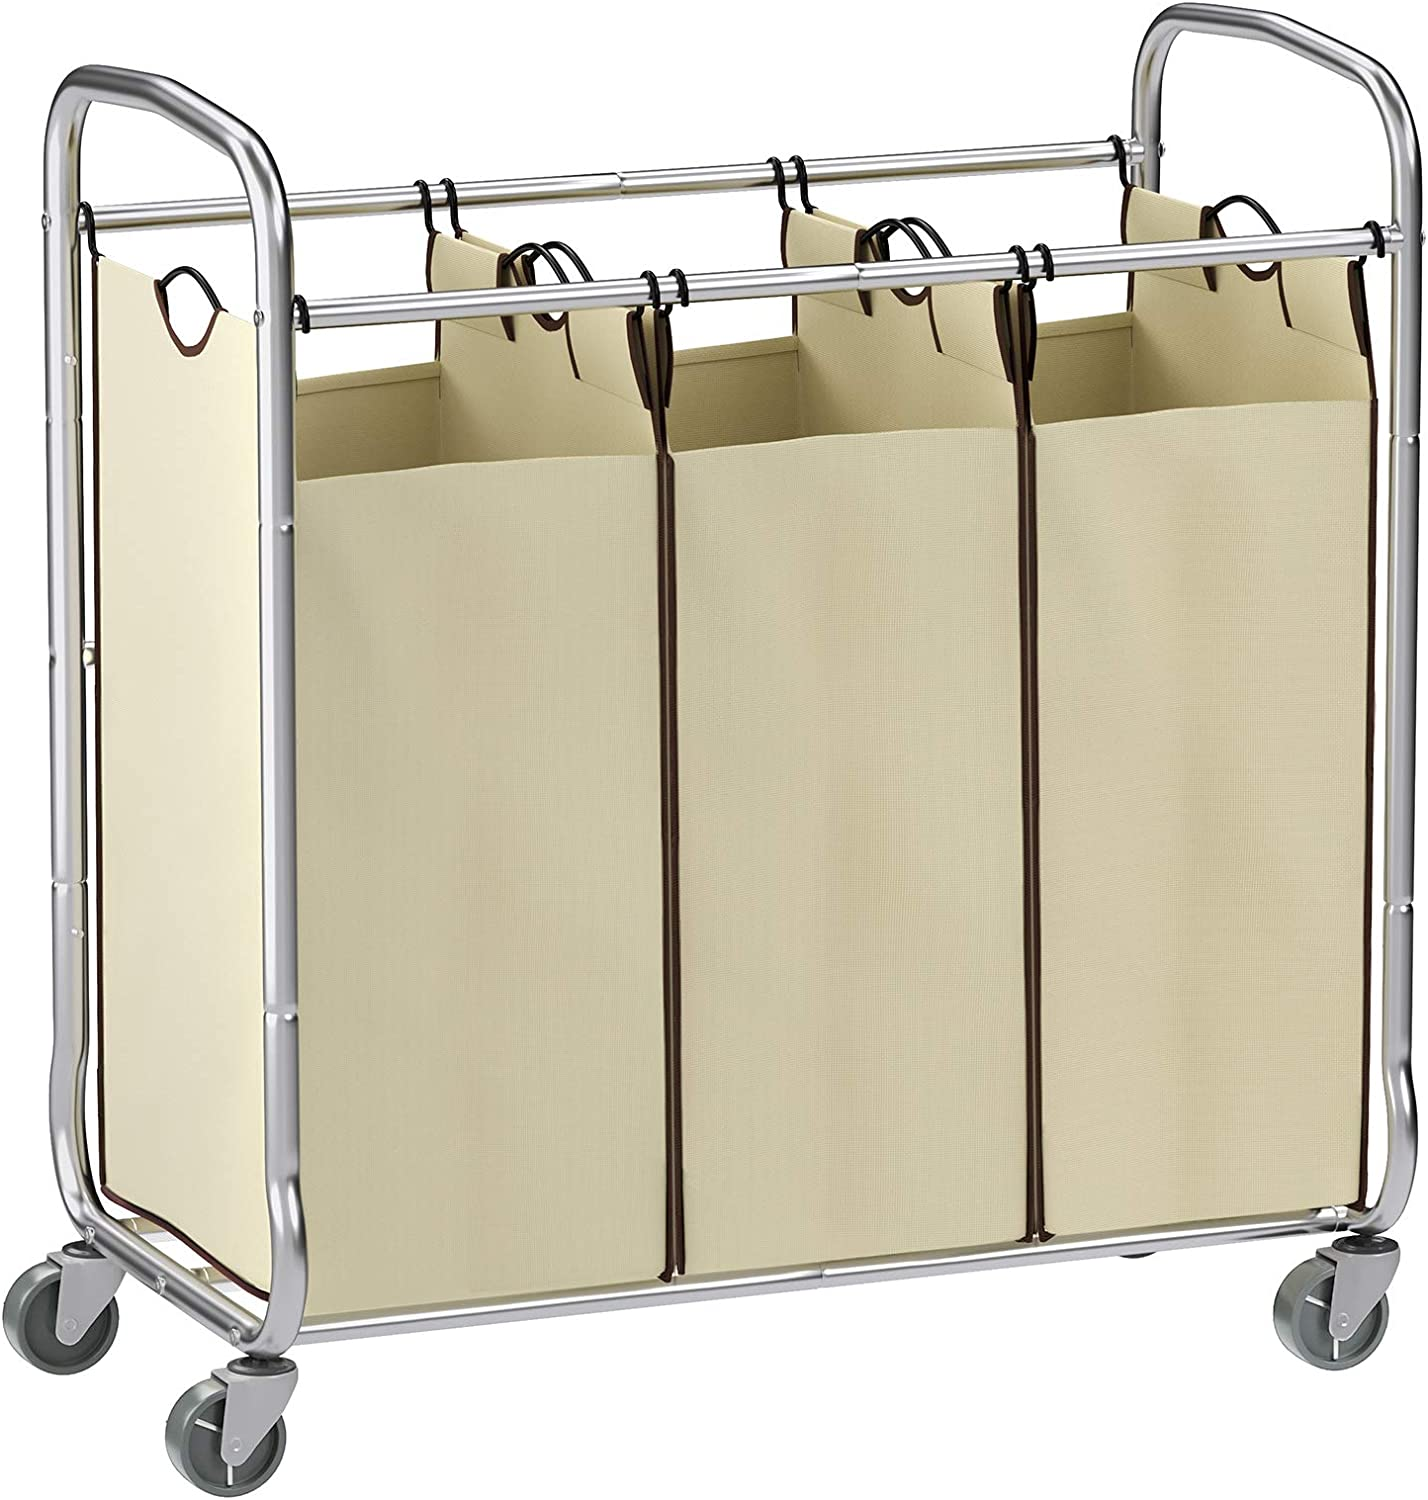 SONGMICS URLS72MZ 3-Bag Laundry Sorter Cart on Wheels, Three, Beige